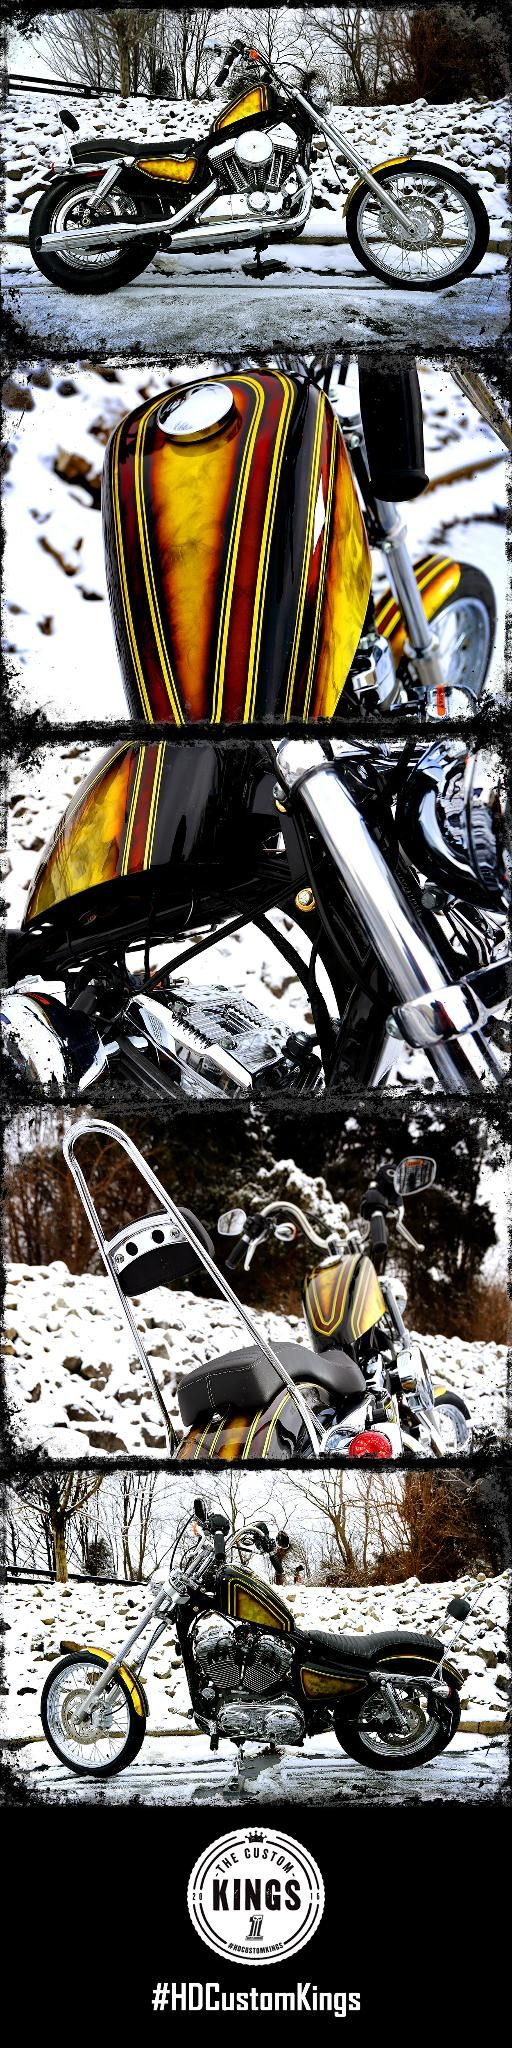 Bluegrass Harley-Davidson chose to tap into the creative minds of our customization fore-fathers and build a chopper-style vintage inspired bike, reminiscent of the 60's and 70's freedom machines. | Harley-Davidson #HDCustomKings